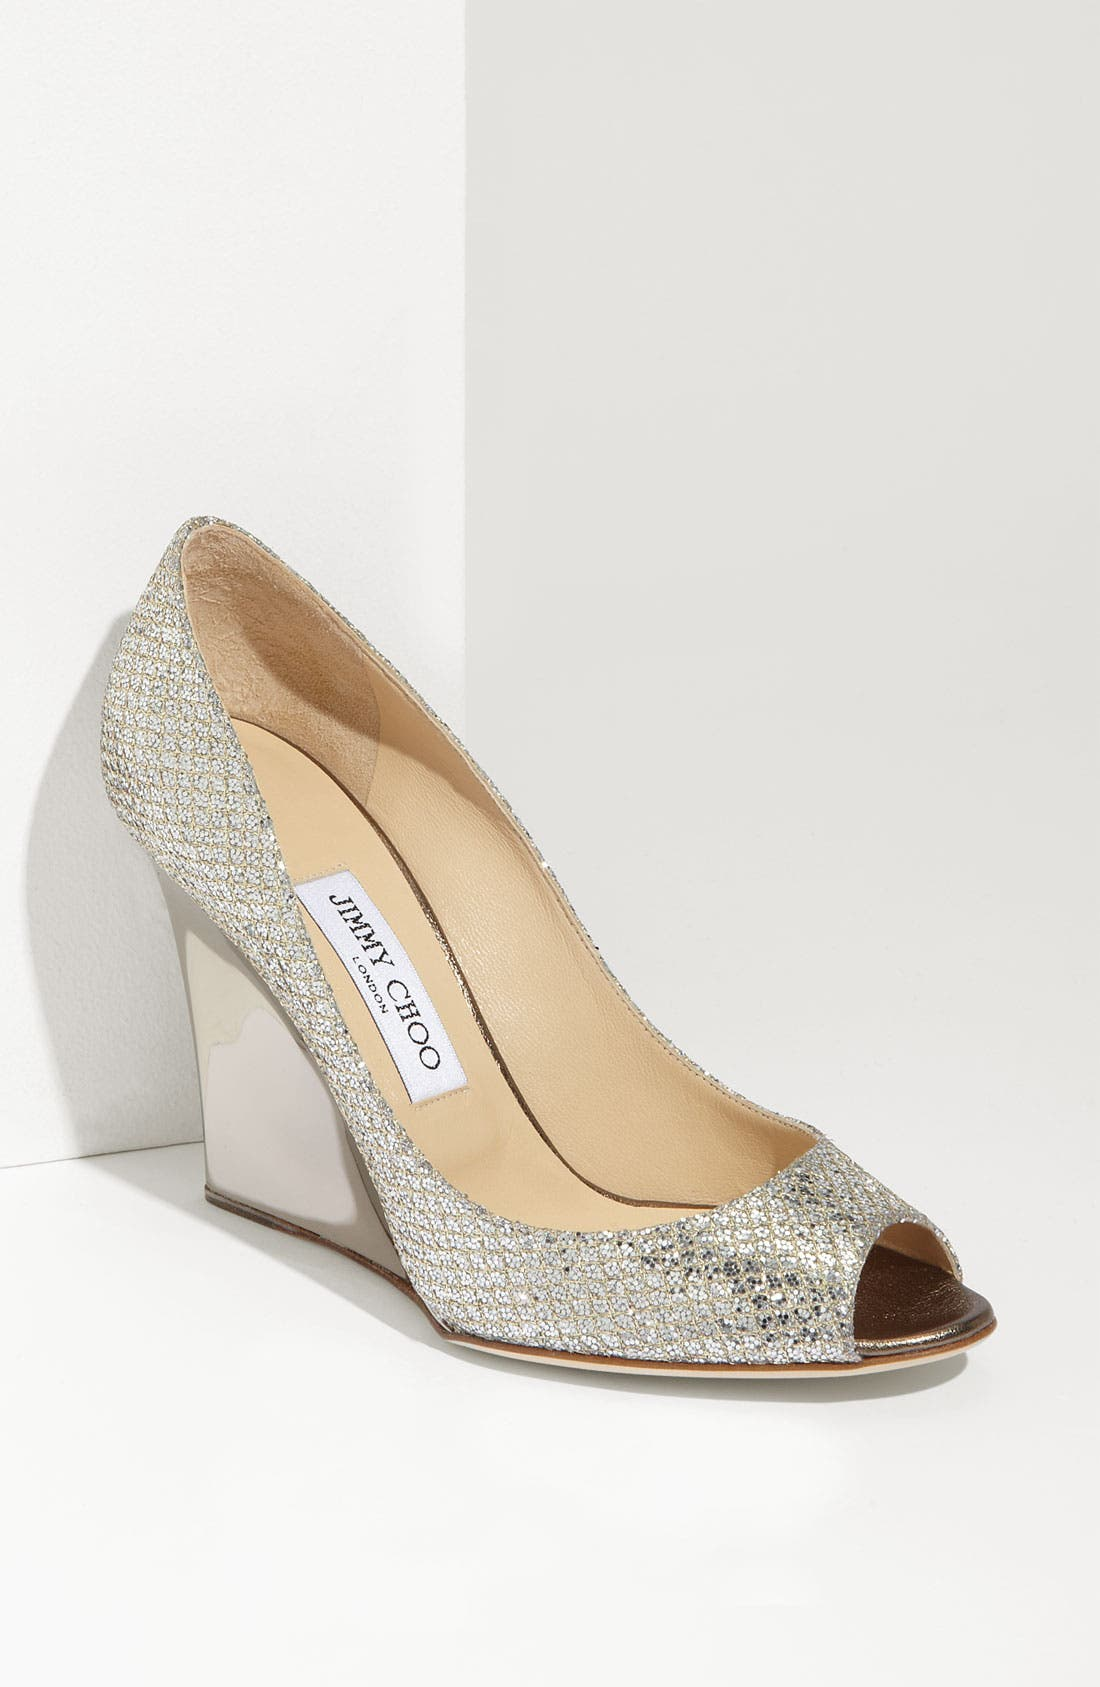 Main Image - Jimmy Choo 'Bello' Glitter Wedge